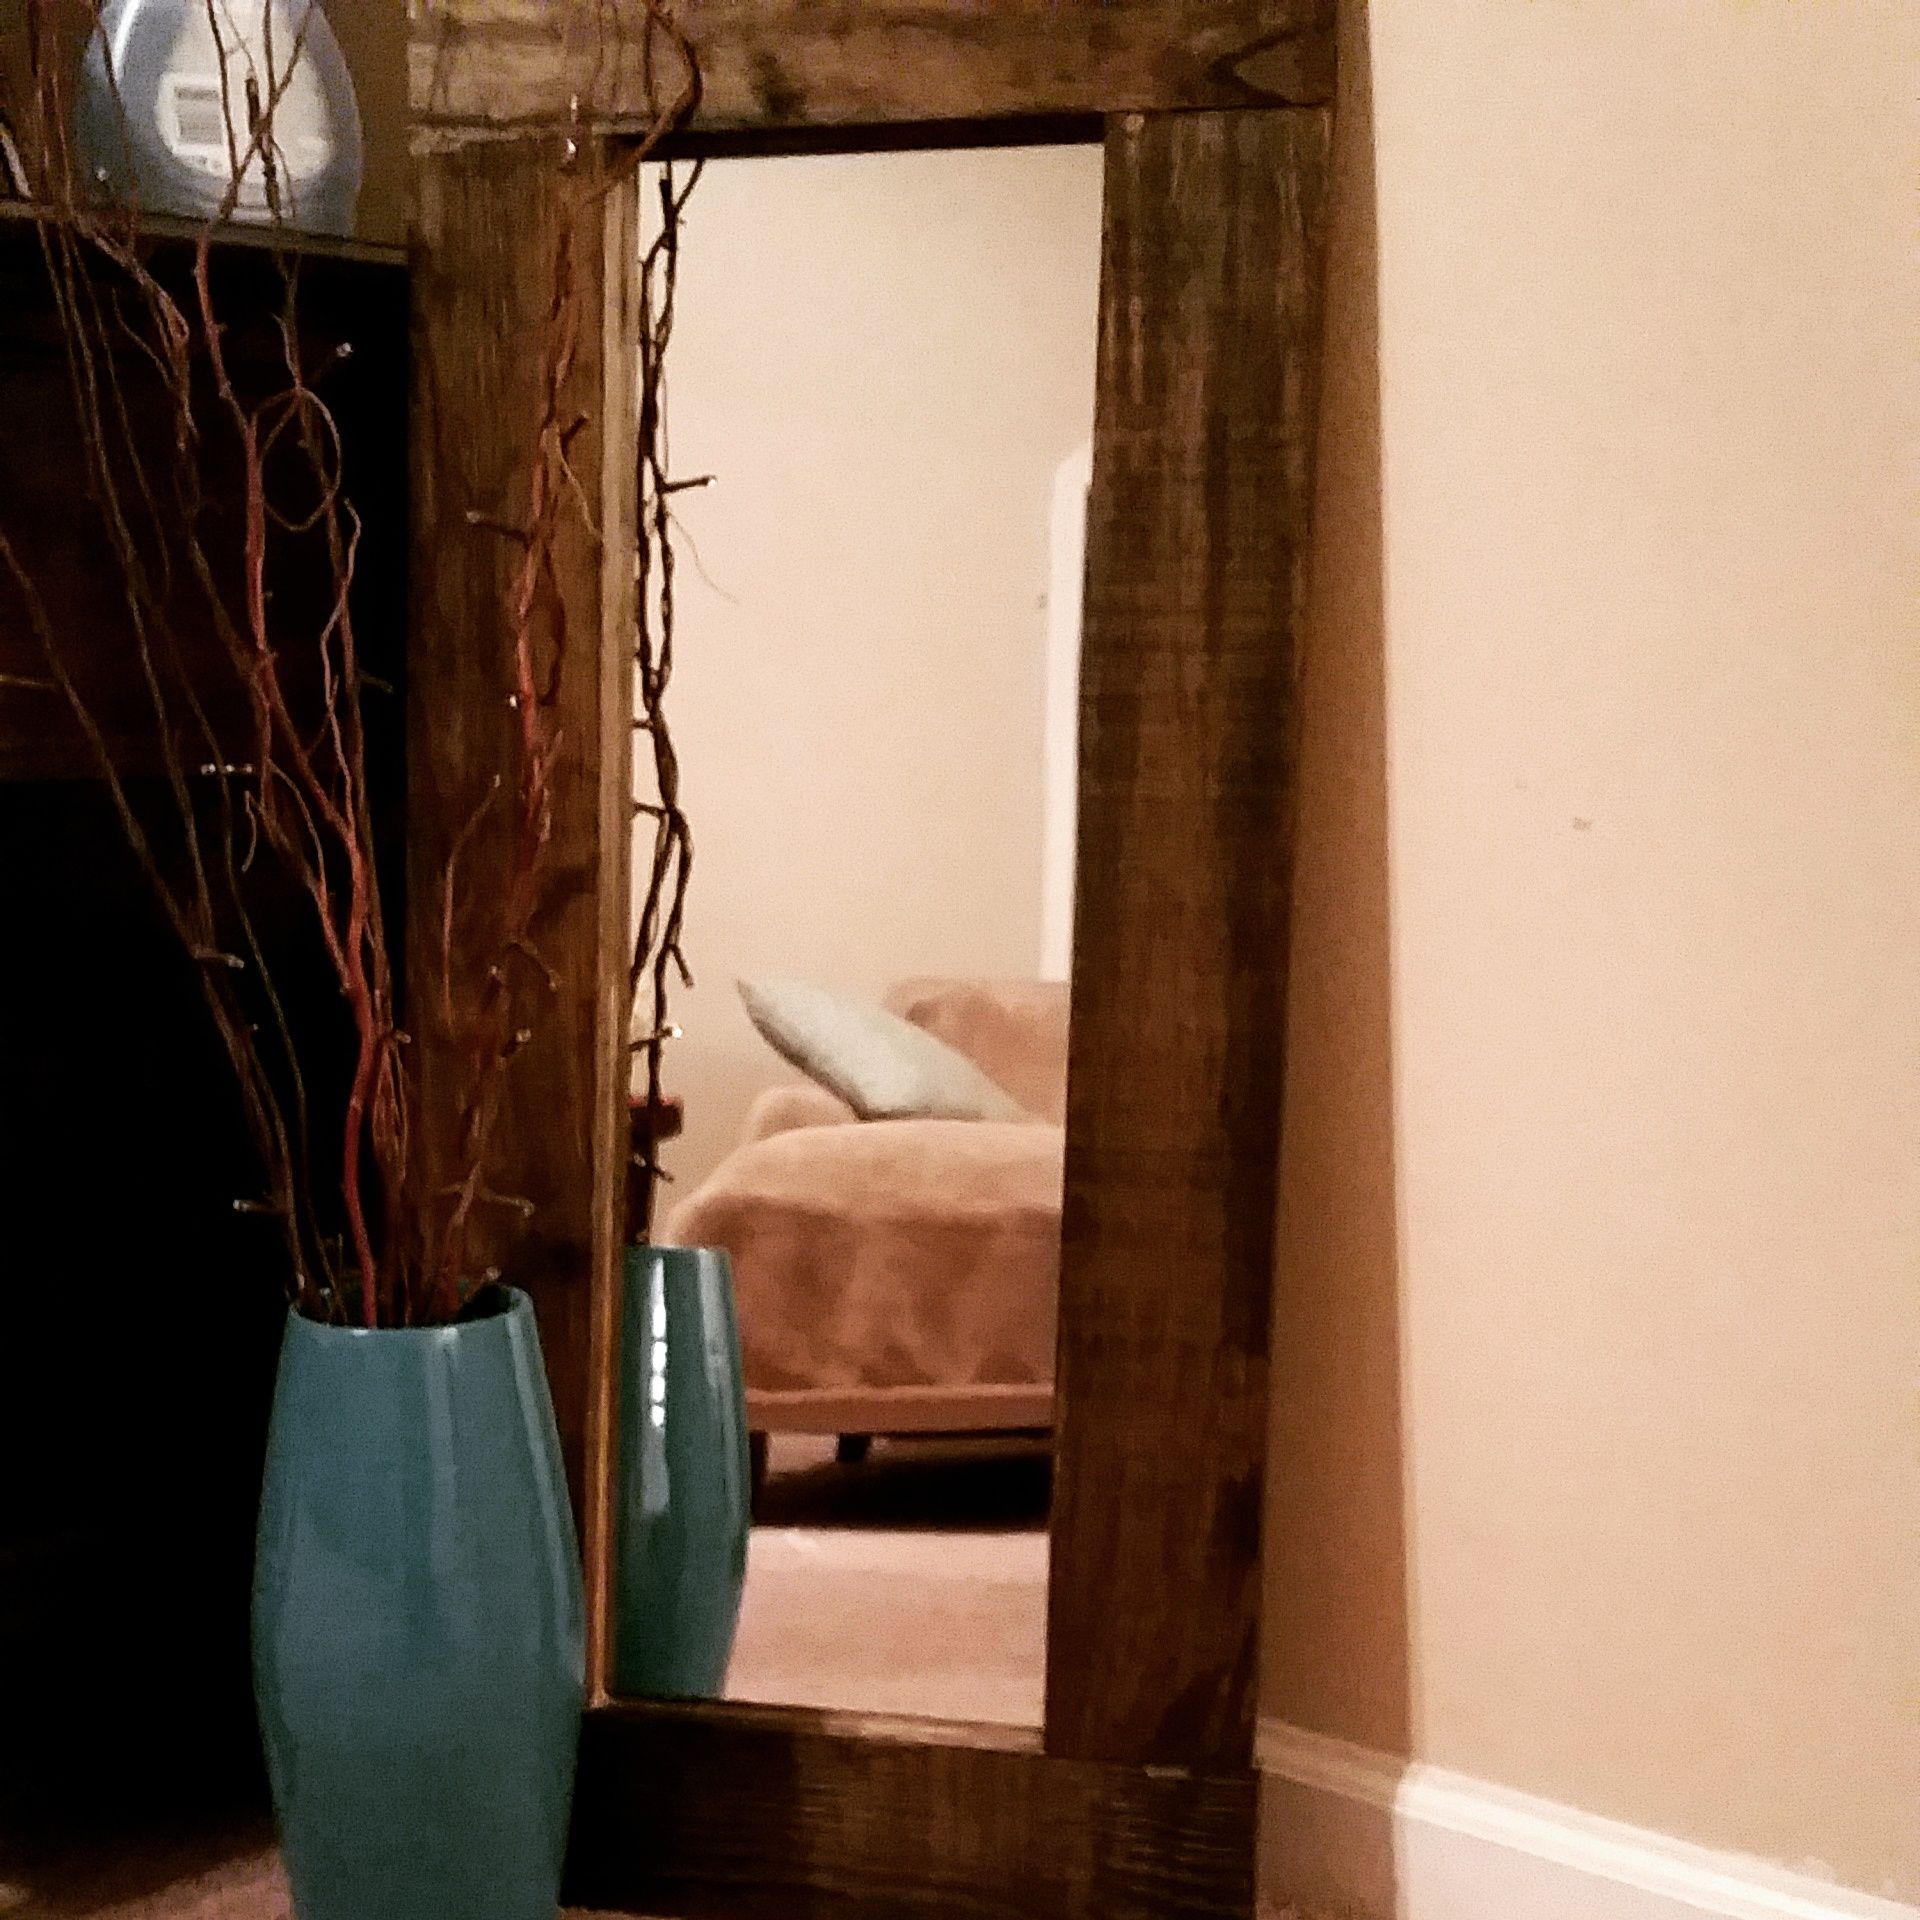 Wooden mirror frame made with $5 mirror from Walmart, Lowes or Target.